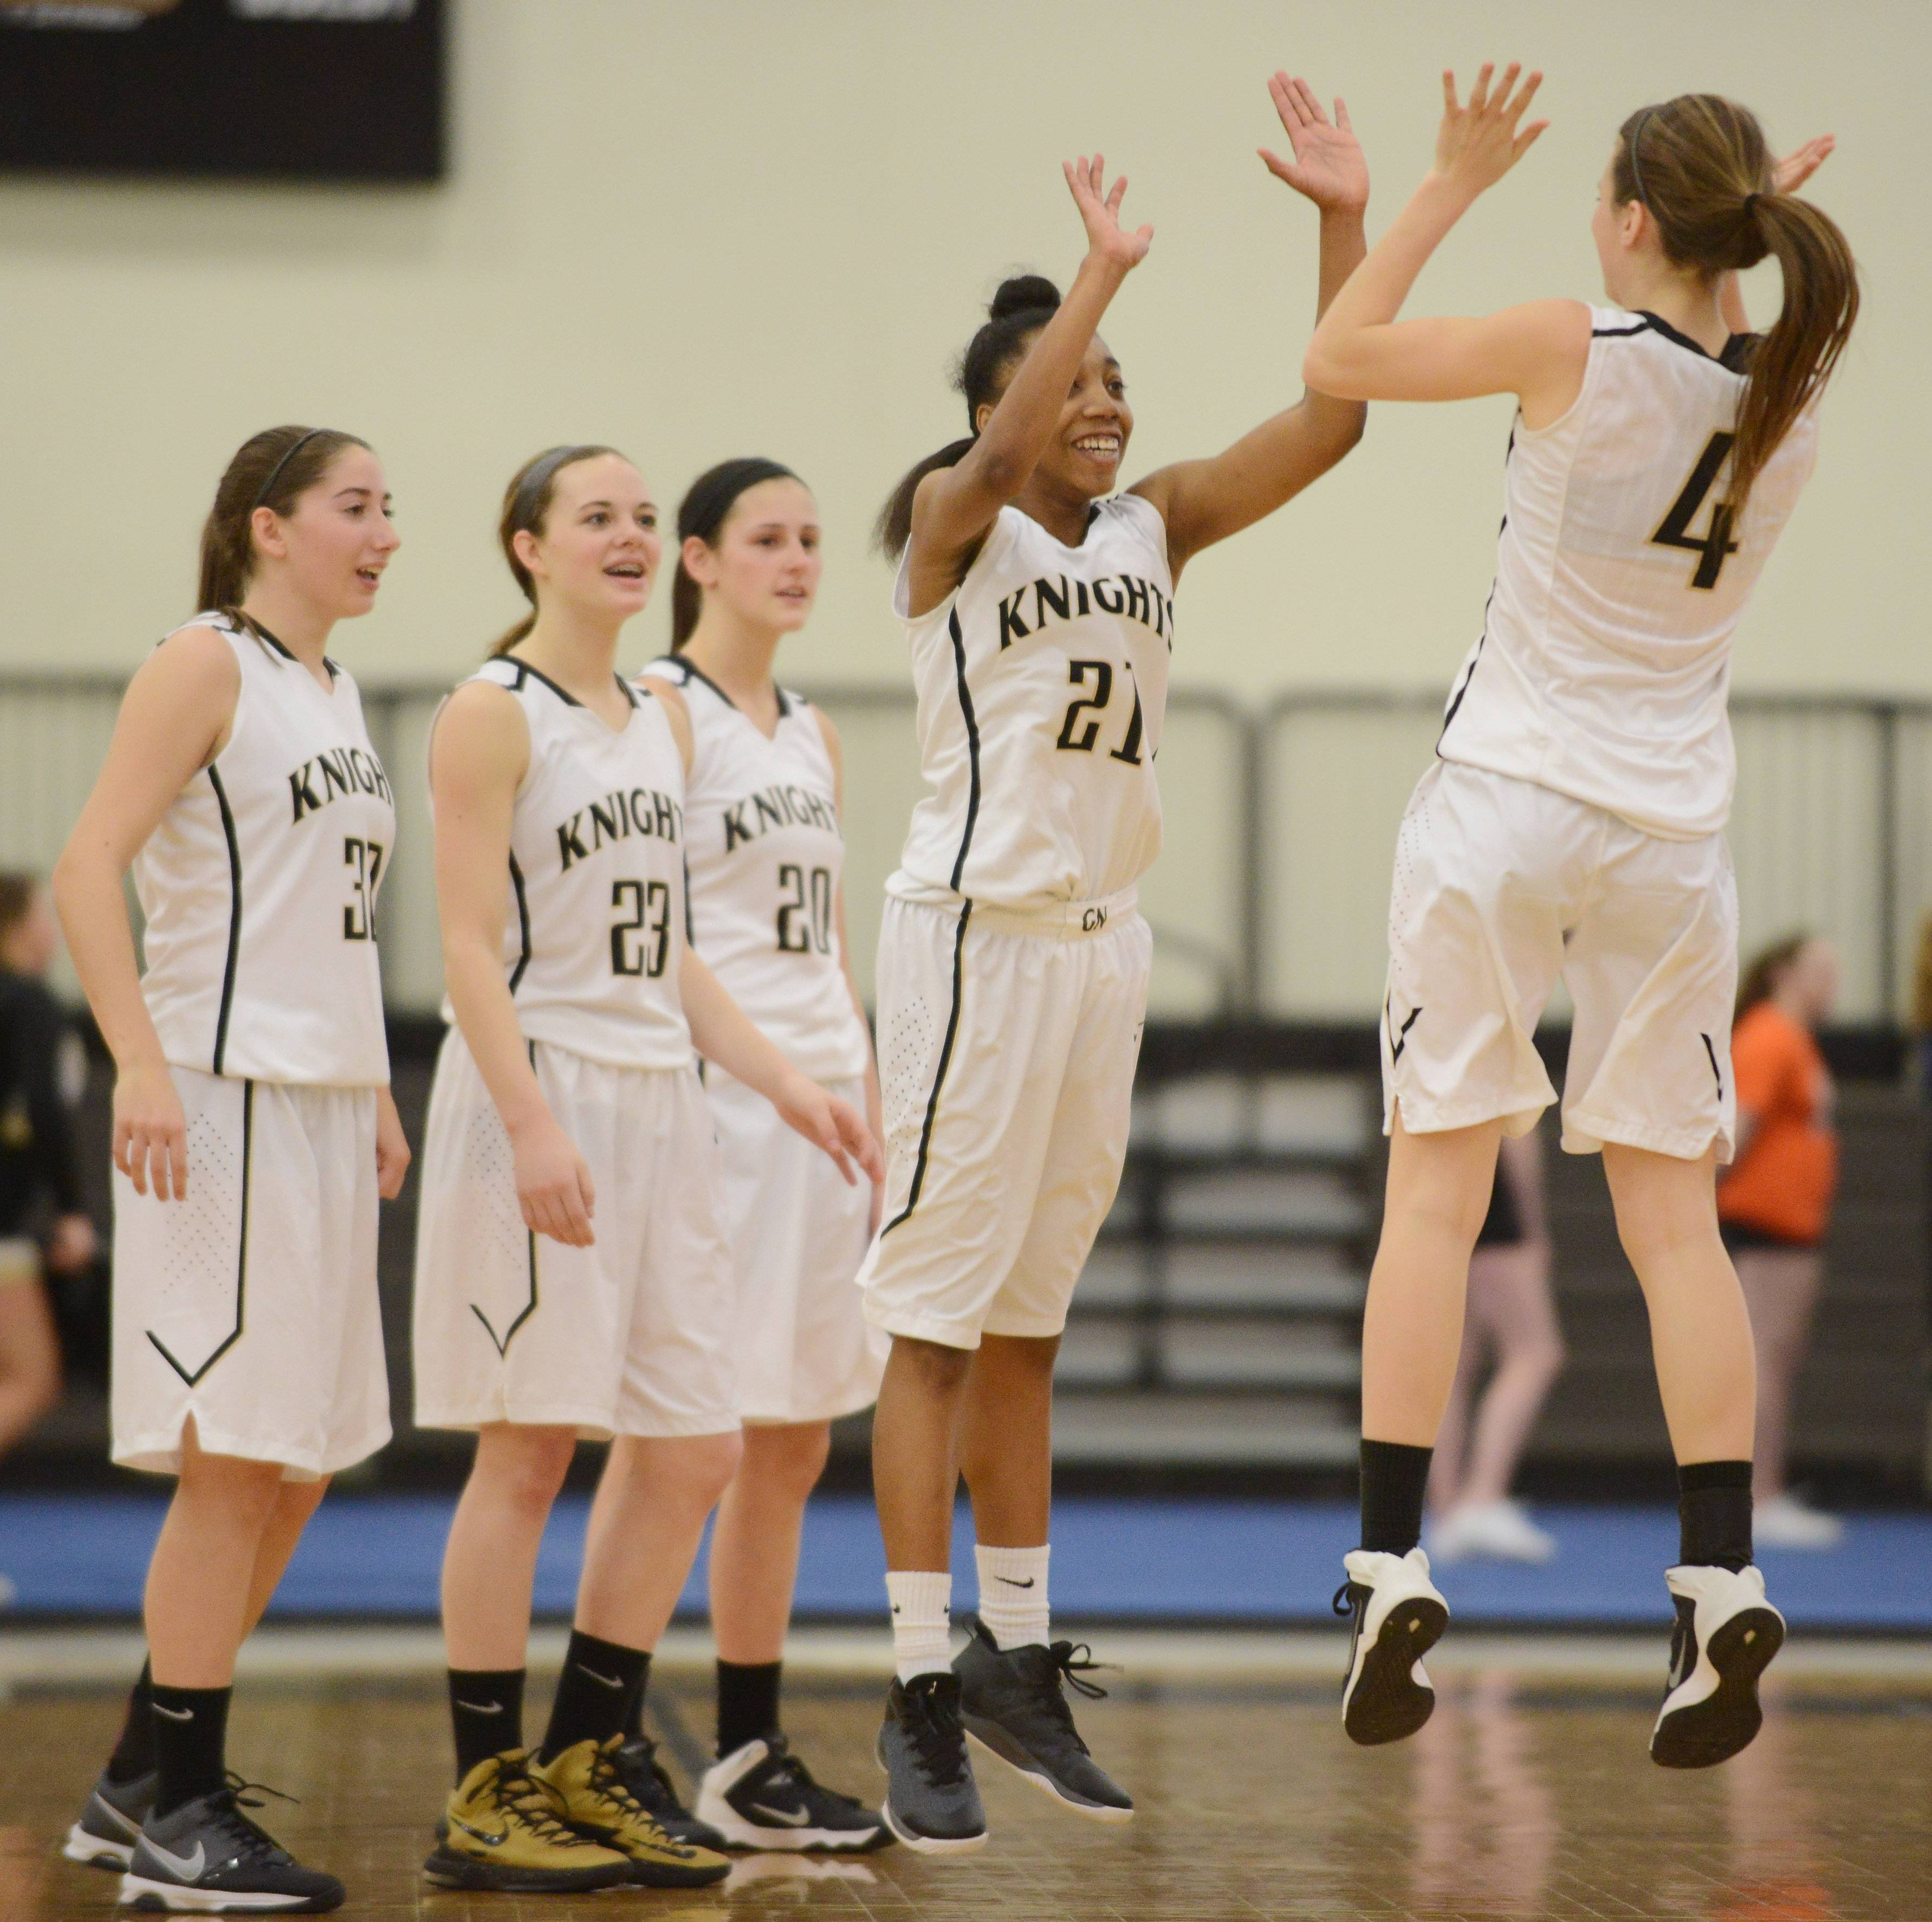 Images from the Grayslake North vs. Woodstock girls basketball game on Saturday, Jan. 24 in Grayslake.